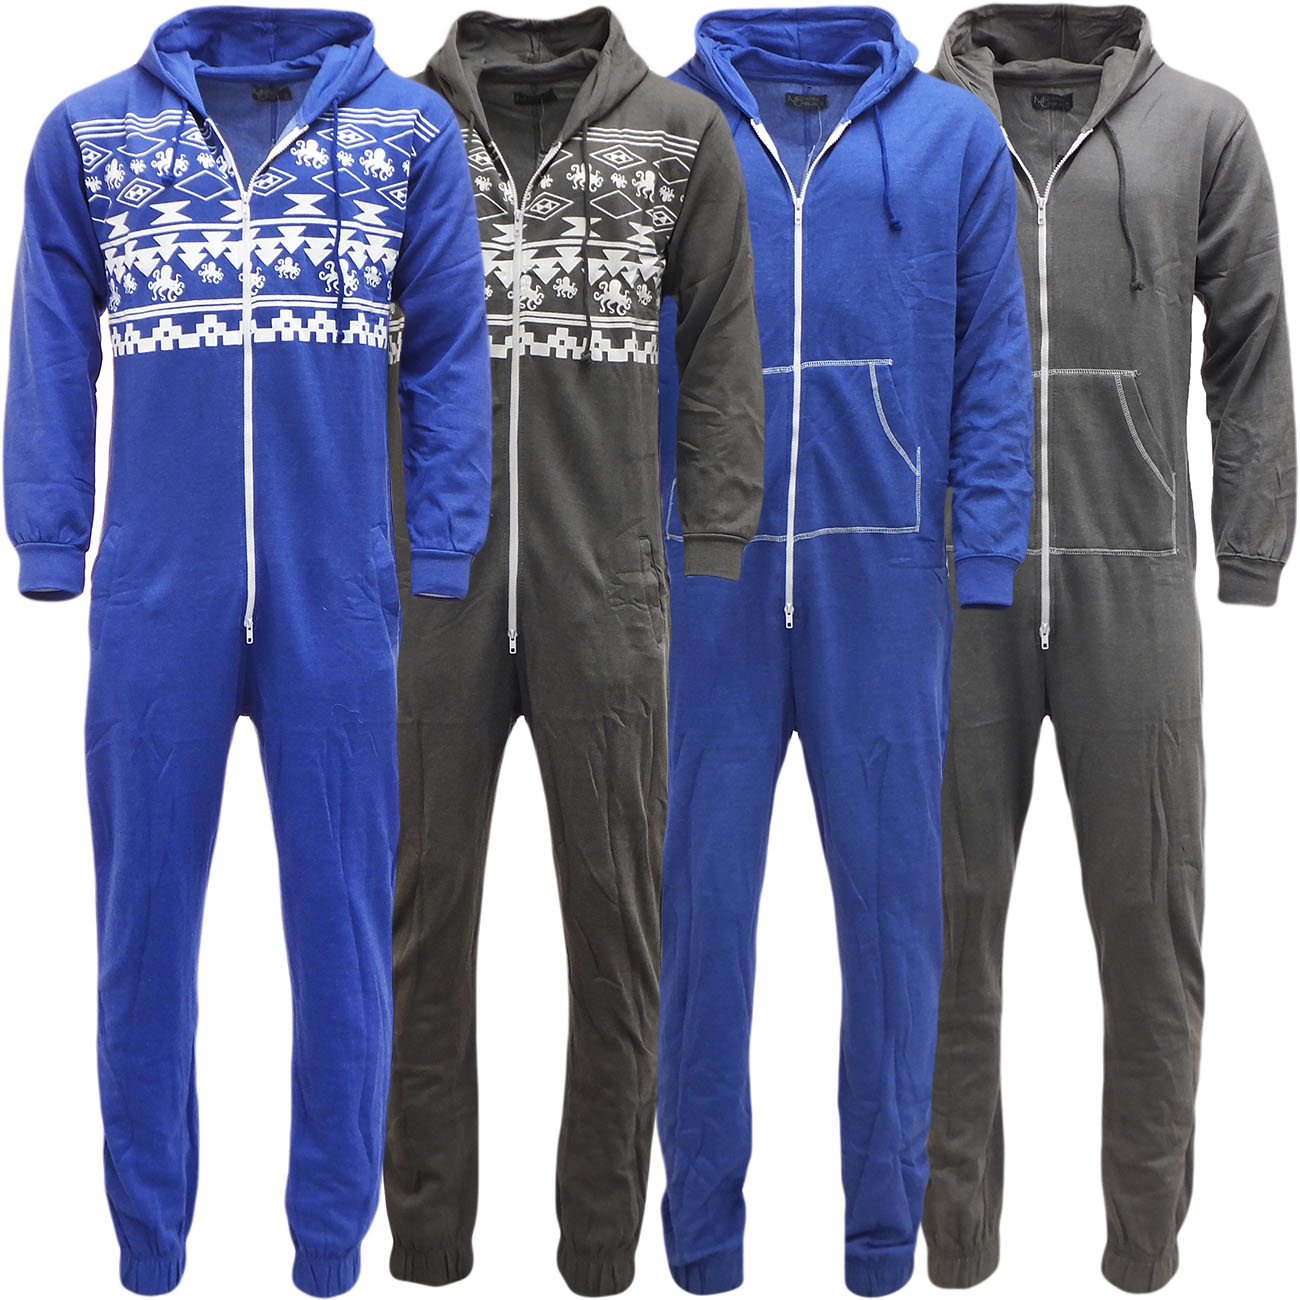 Big and tall pajamas are a very difficult clothing item to find in typical retail stores. Either the pants are too short, or the elastic is too tight, which makes what should be a very comfortable outfit the exact opposite: uncomfortable.